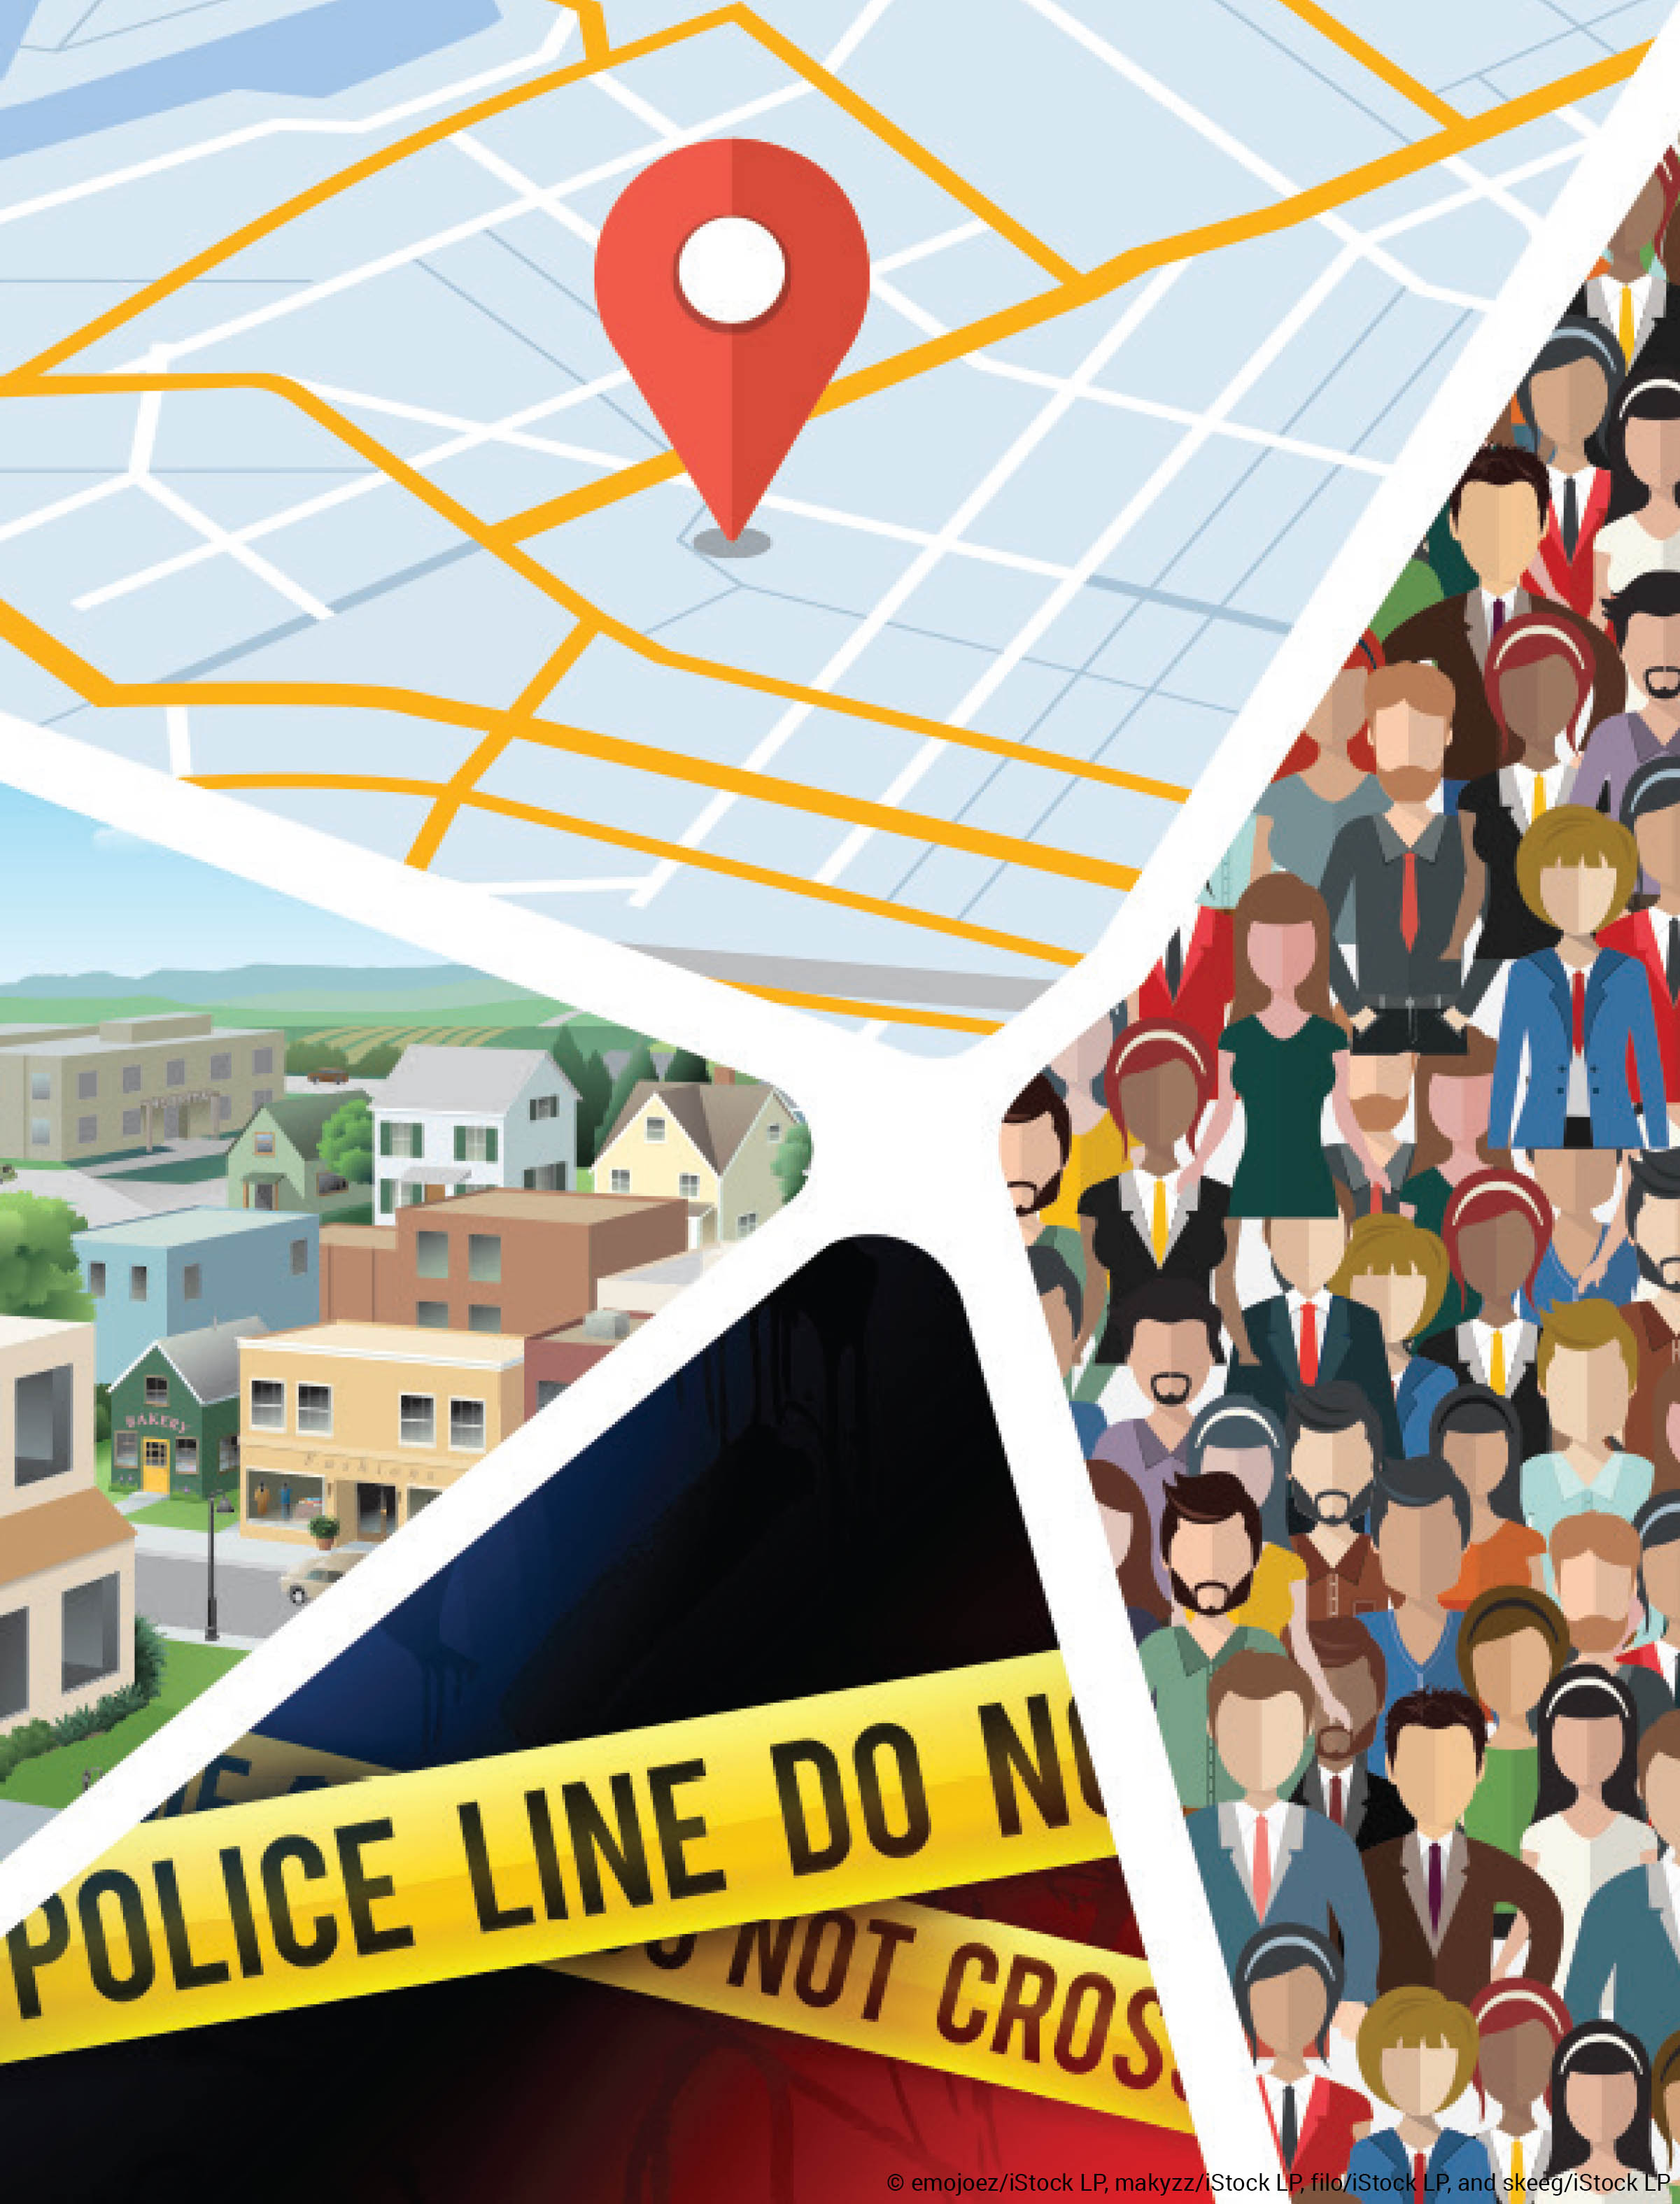 Illustration of map, buildings, a crowd, and police line tape